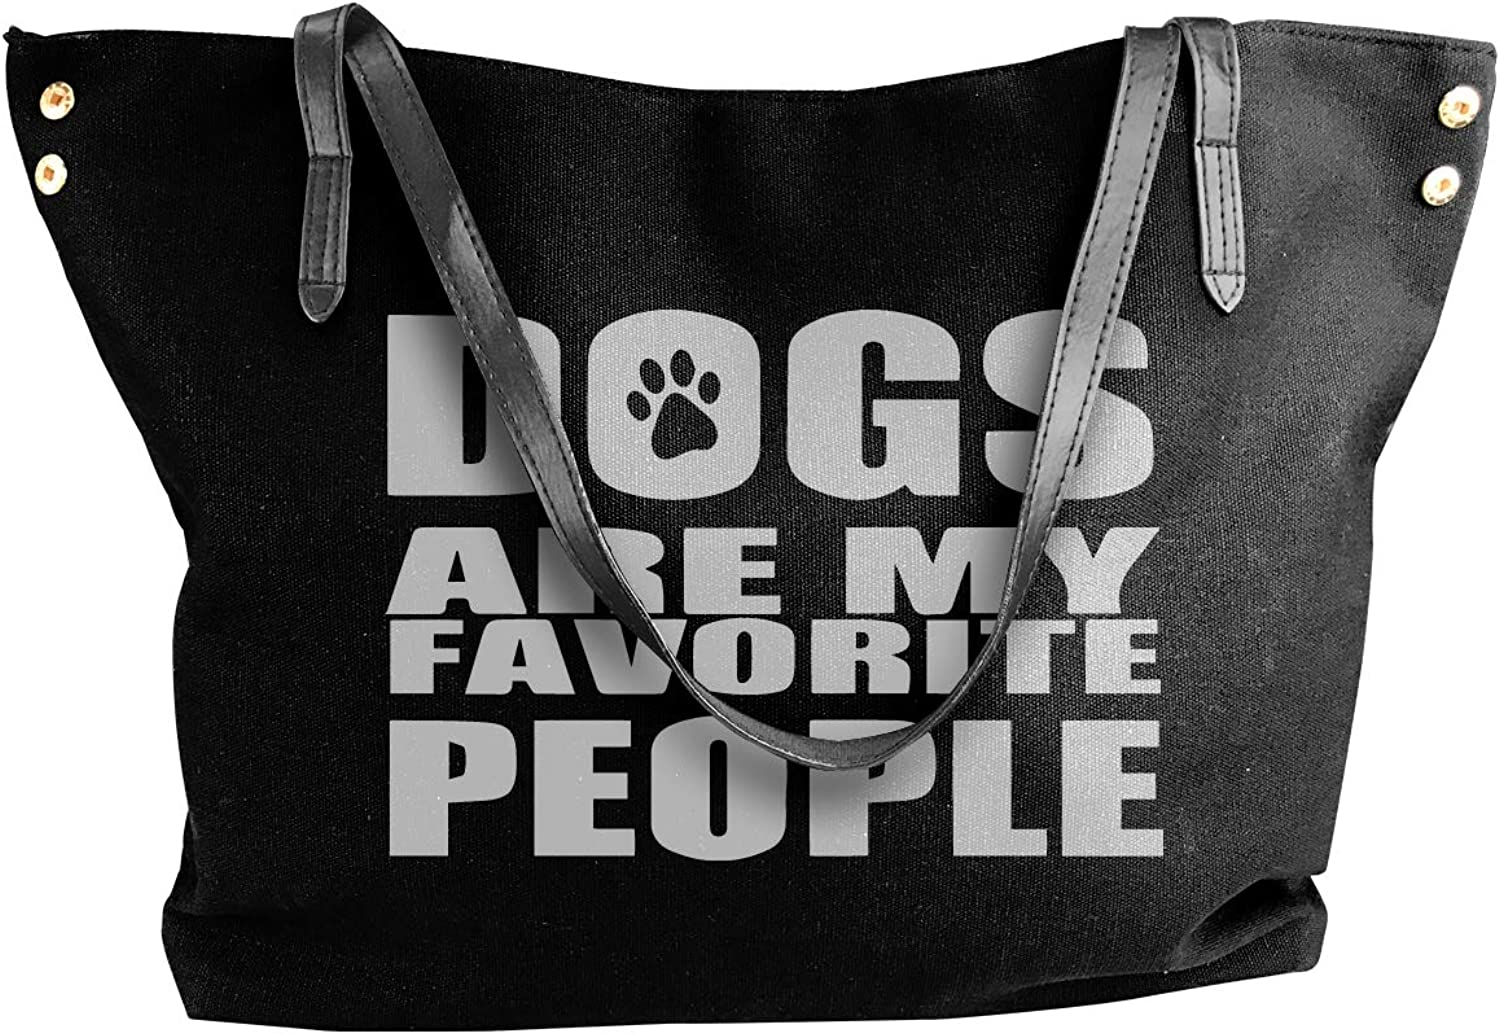 Dogs Are My Favorite People Women'S Casual Canvas Shoulder Bag For Travel Handbag